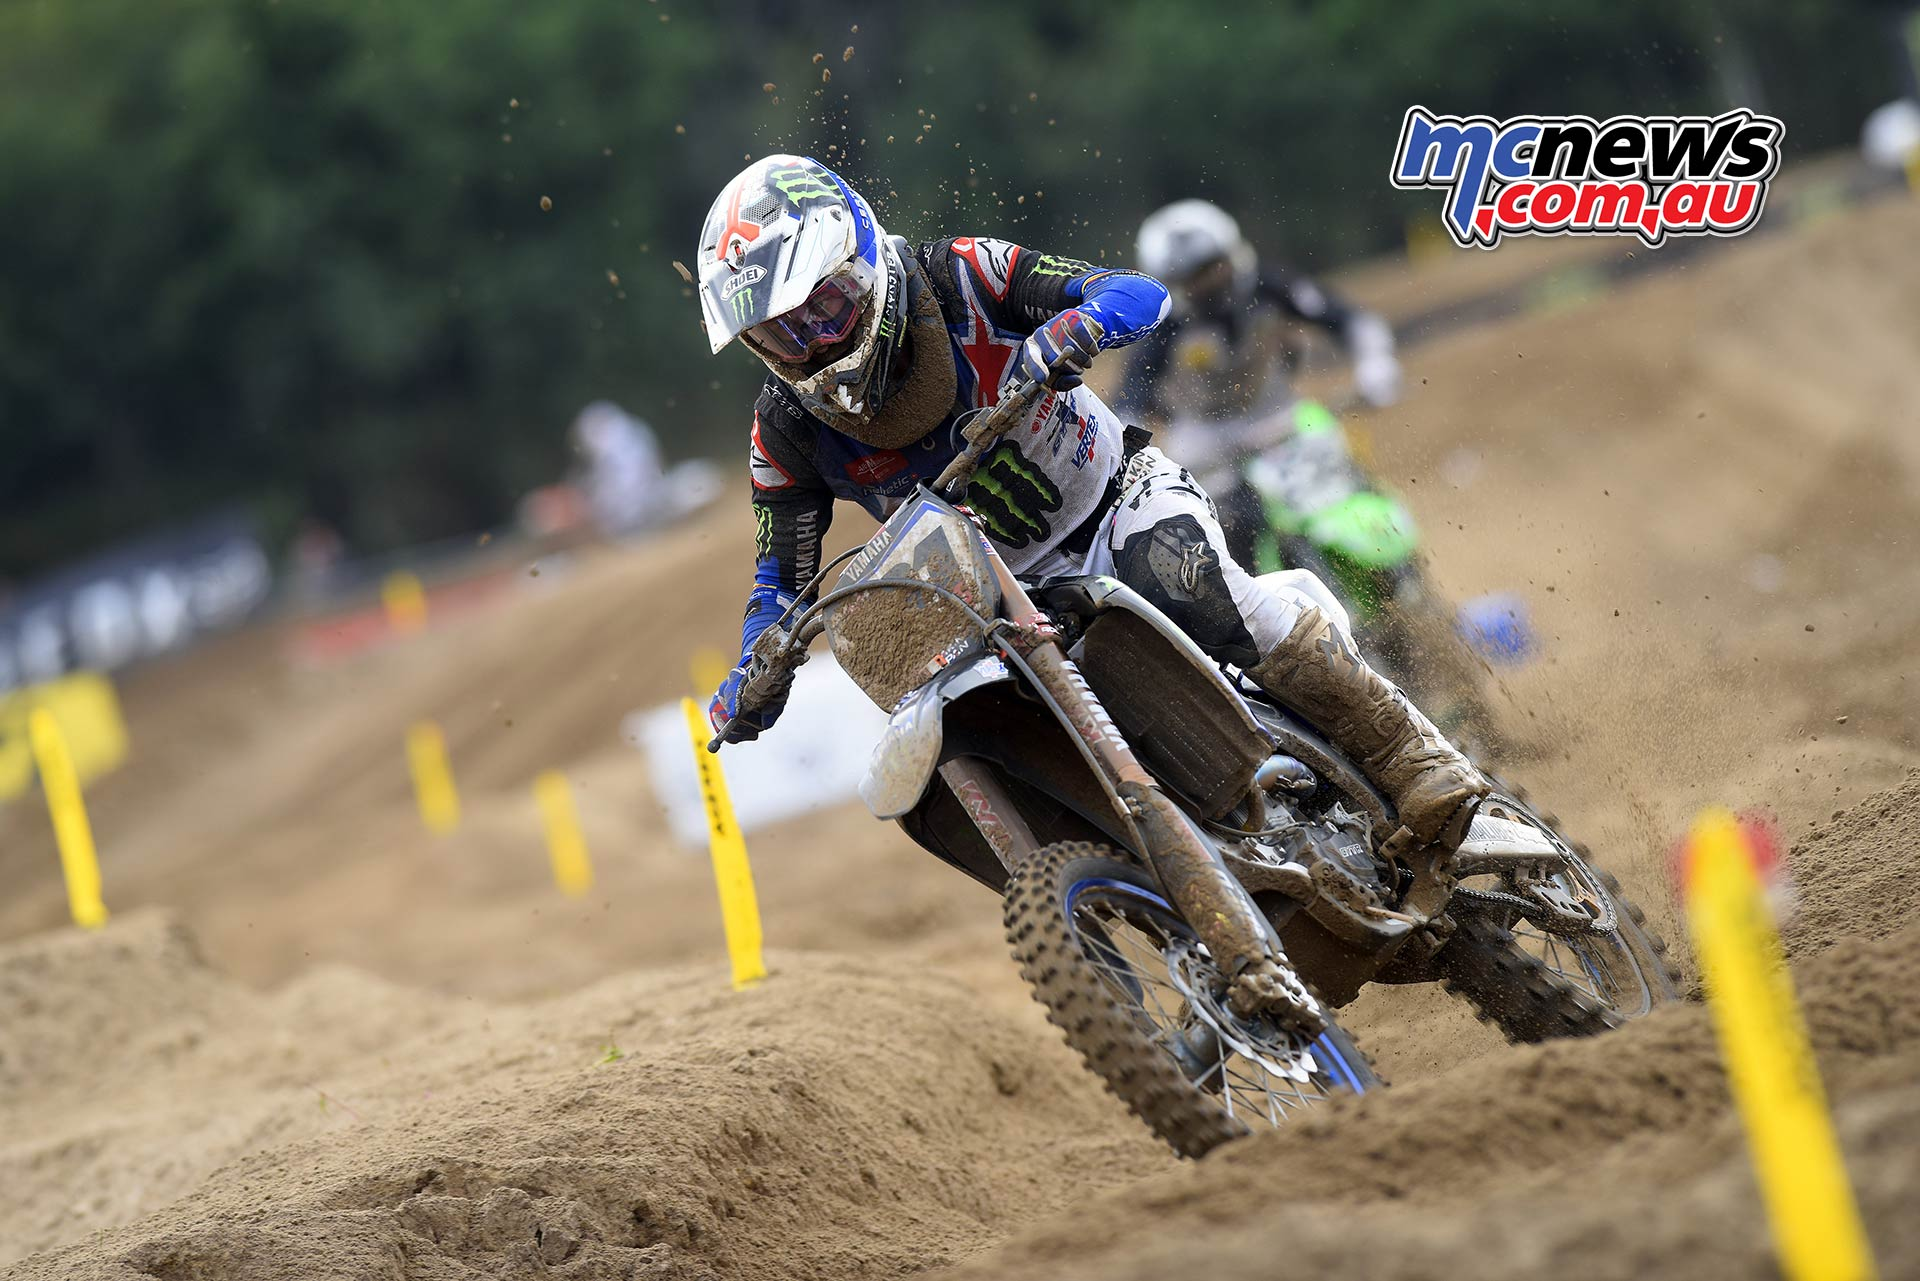 MXGP Rnd Belgium Pirelli MX Seewer action